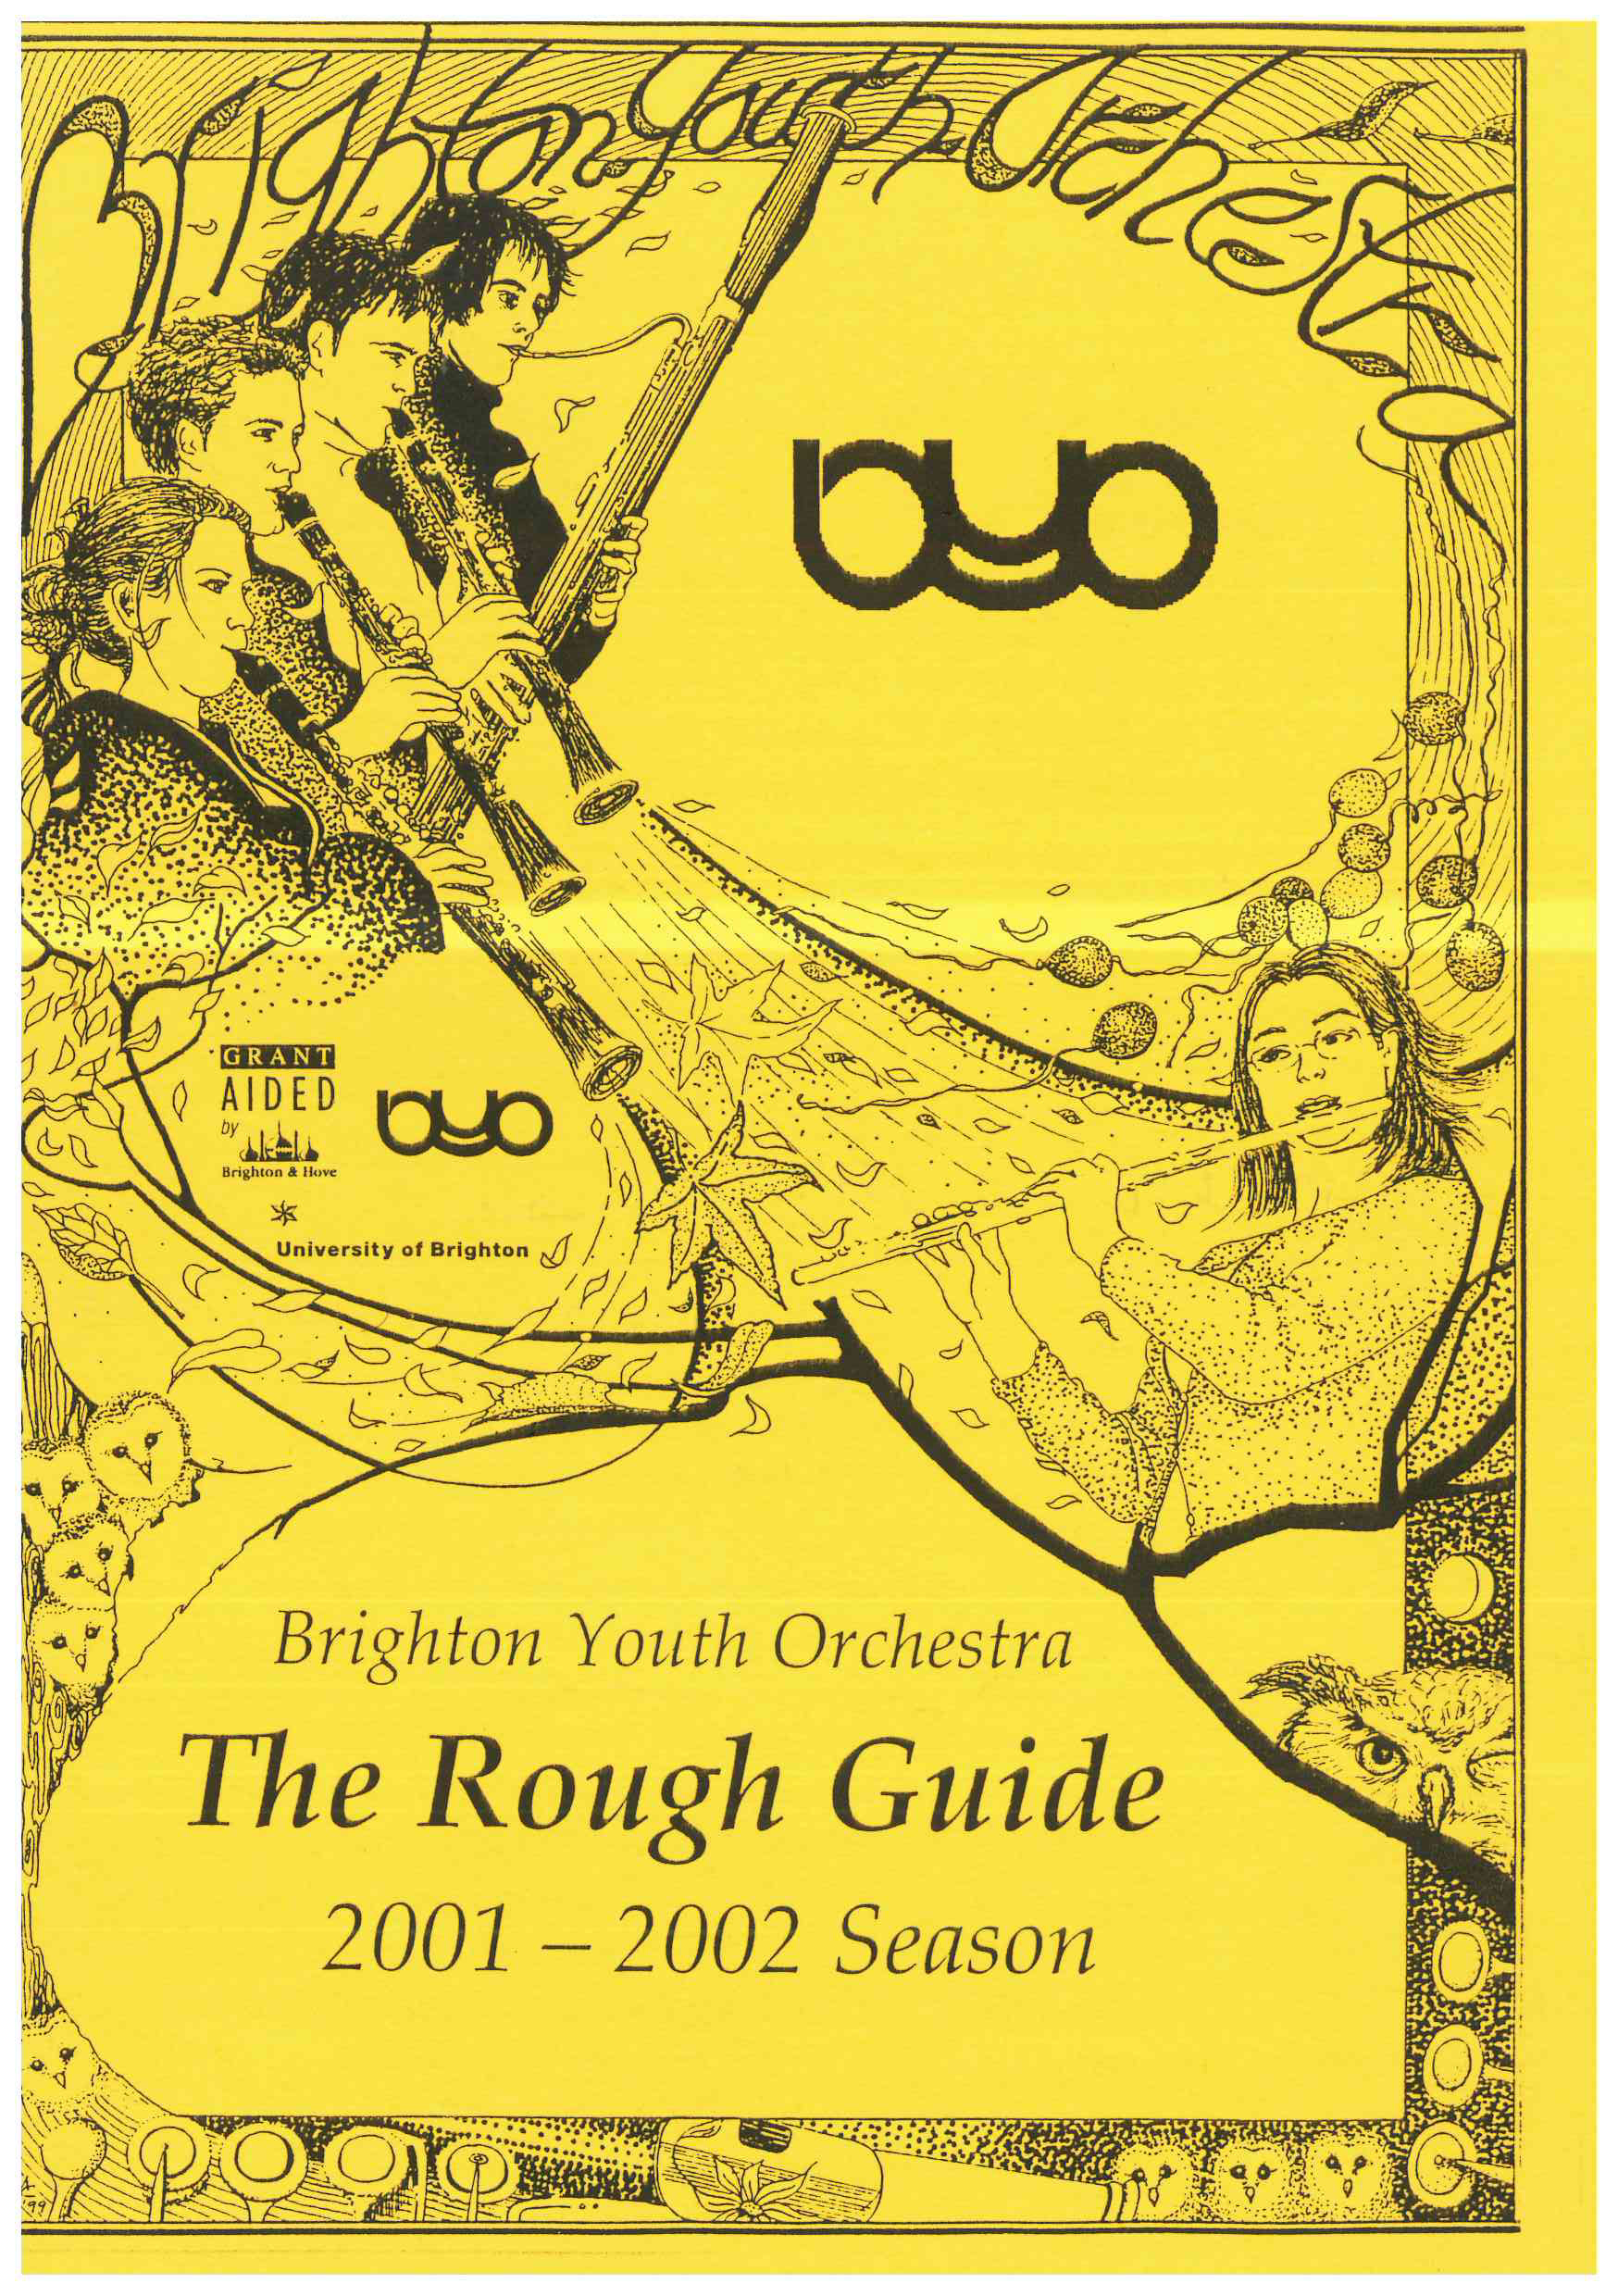 00348-Rough Guide, Season 2001-2002.jpg